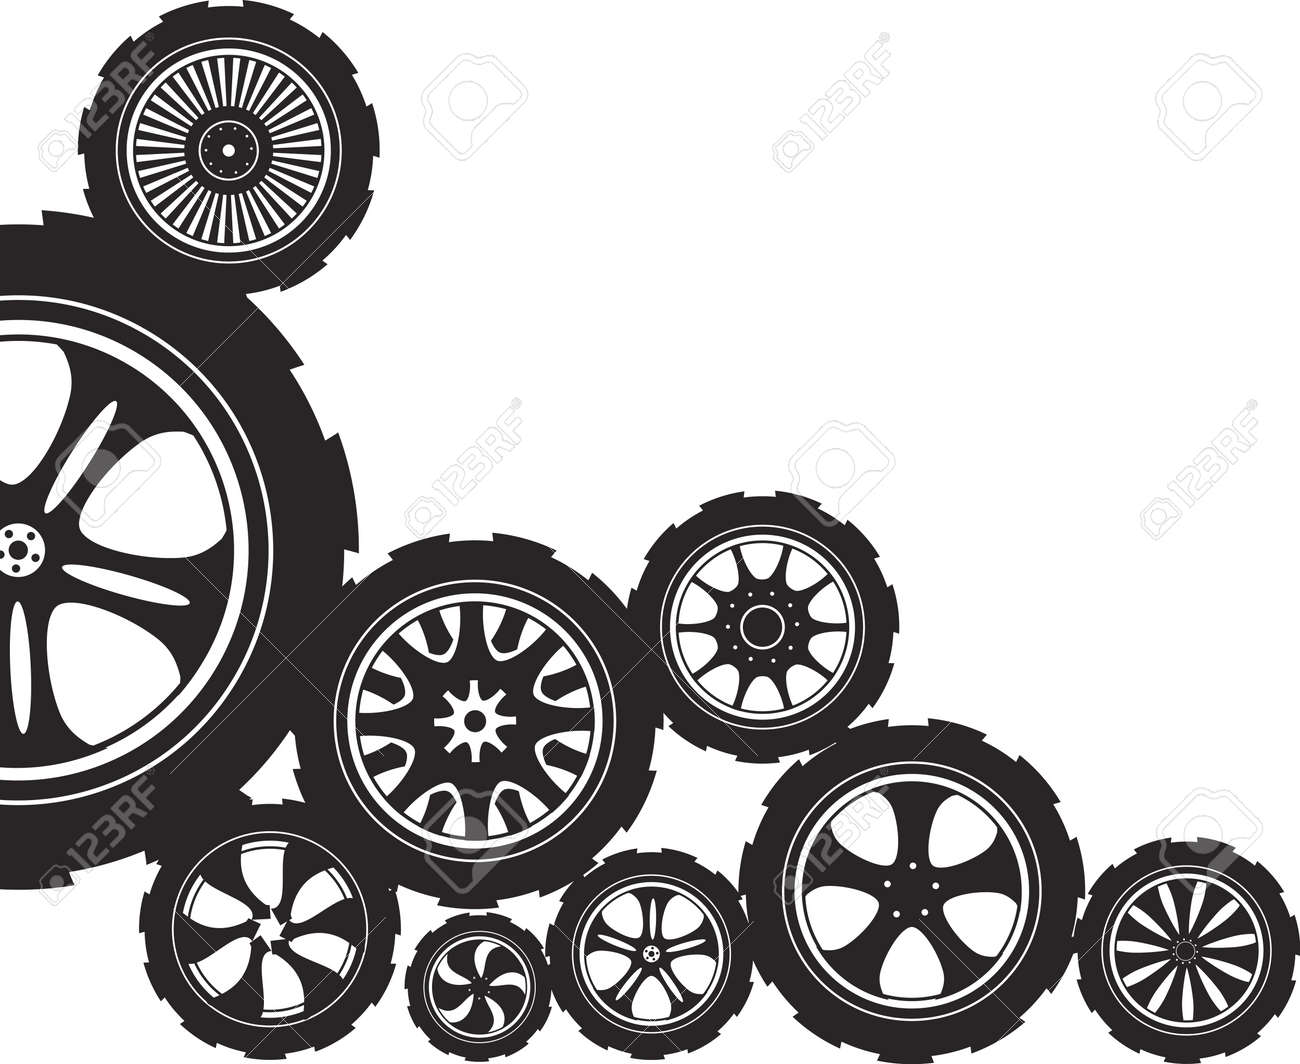 black  silhouette  automotive wheel with alloy wheels and tires Stock Vector - 12741556